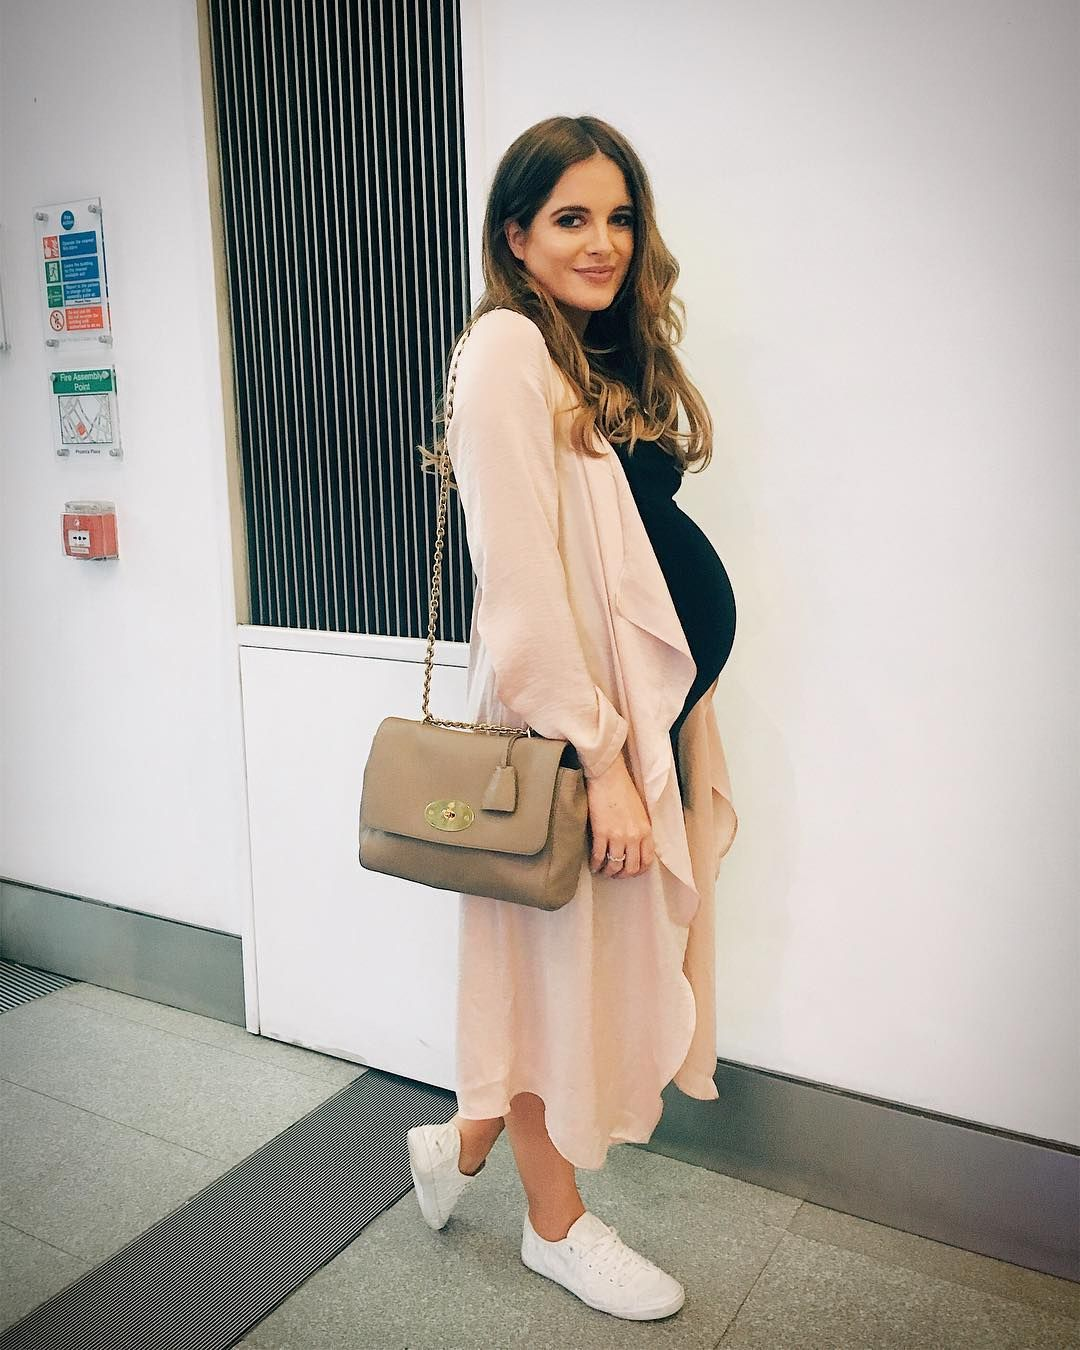 409eb2dc3470 Binky Felstead.. In The Style UK dress and long cardigan